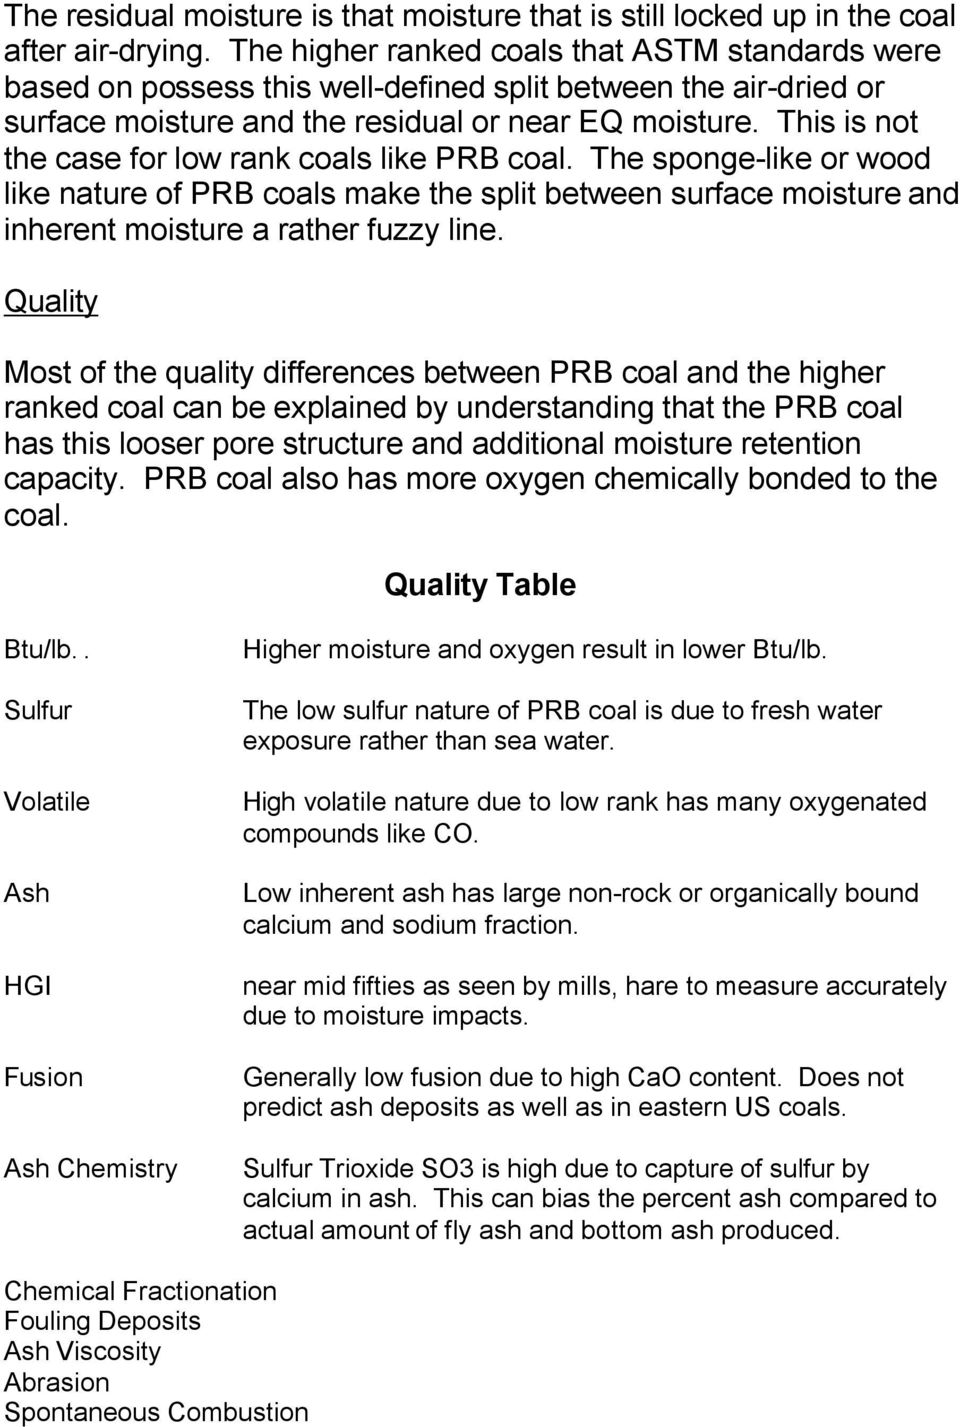 This is not the case for low rank coals like PRB coal. The sponge-like or wood like nature of PRB coals make the split between surface moisture and inherent moisture a rather fuzzy line.